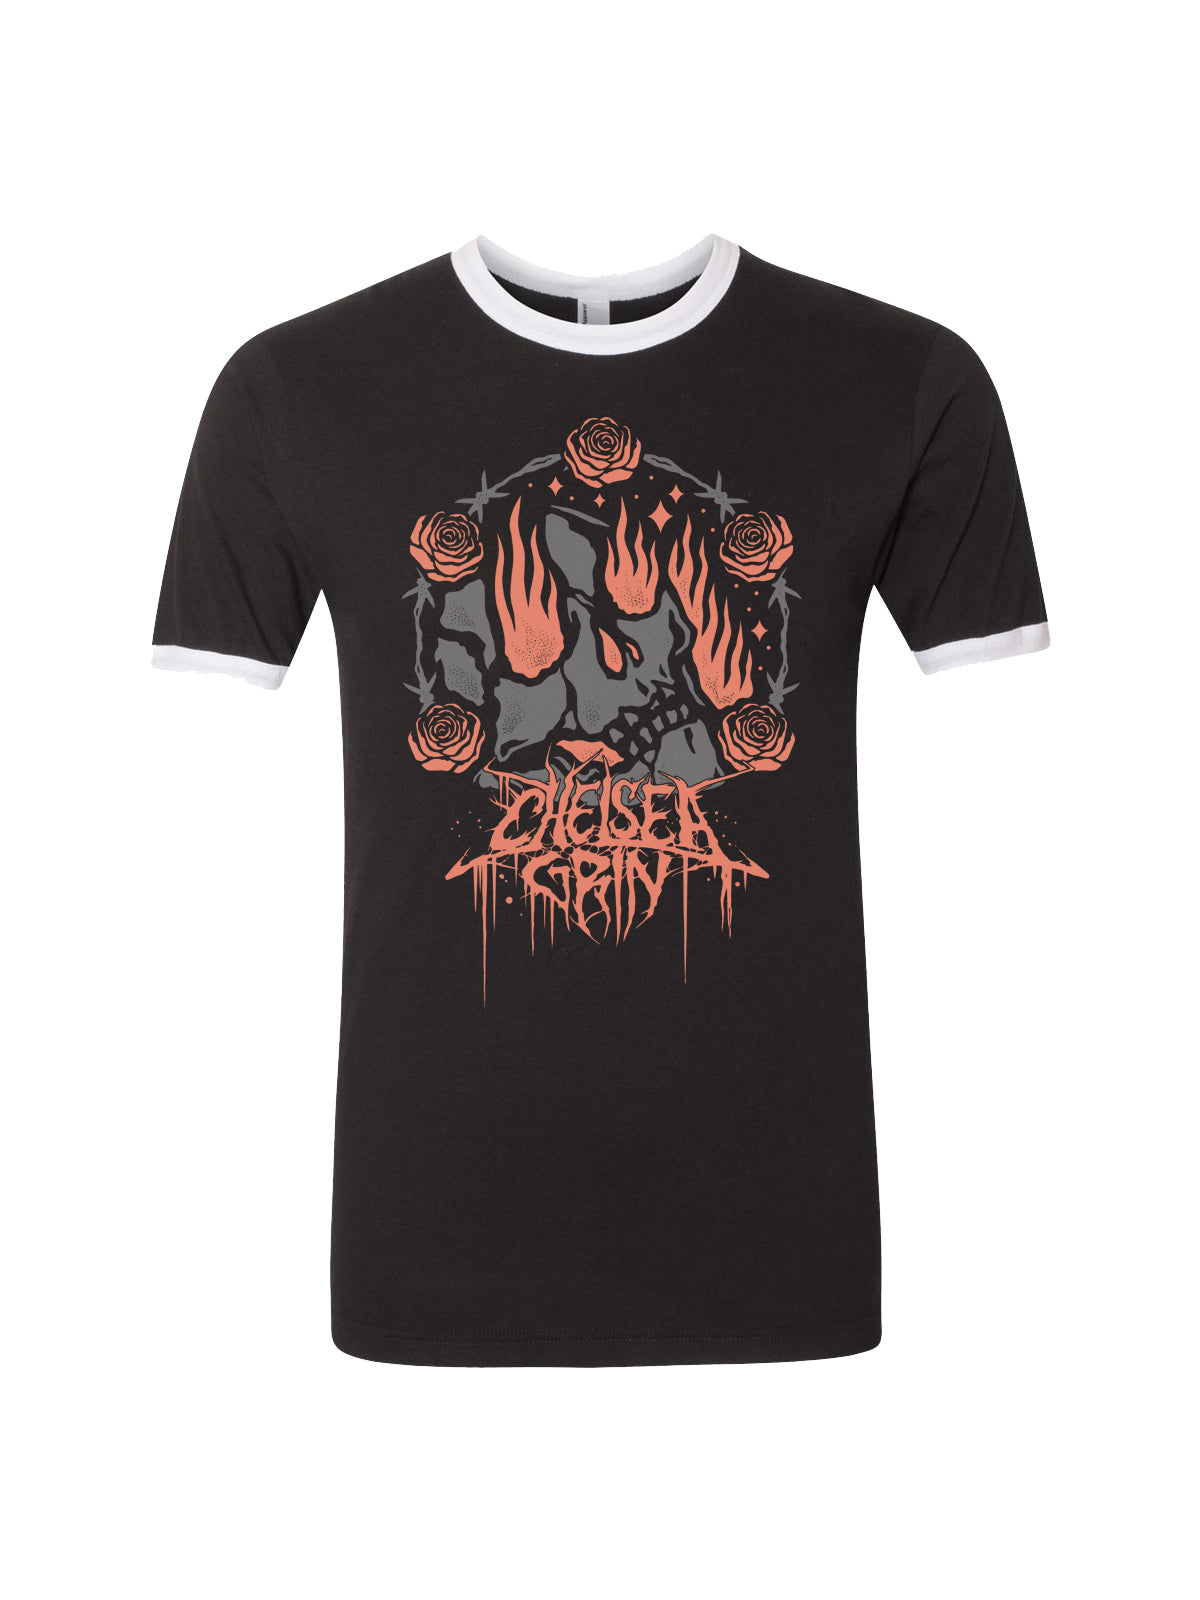 Chelsea Grin - Stay In Hell Ringer Shirt - Merch Limited